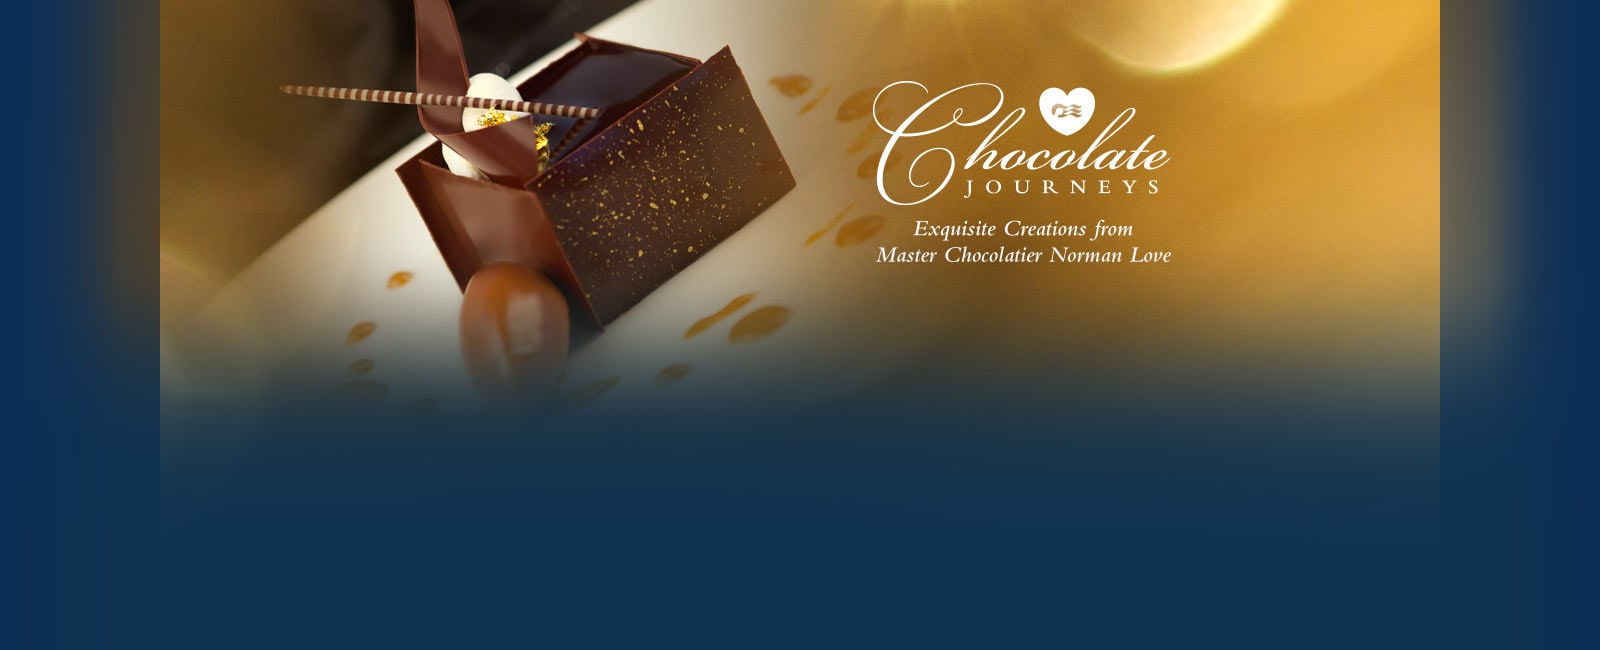 Chocolate Journeys Banner